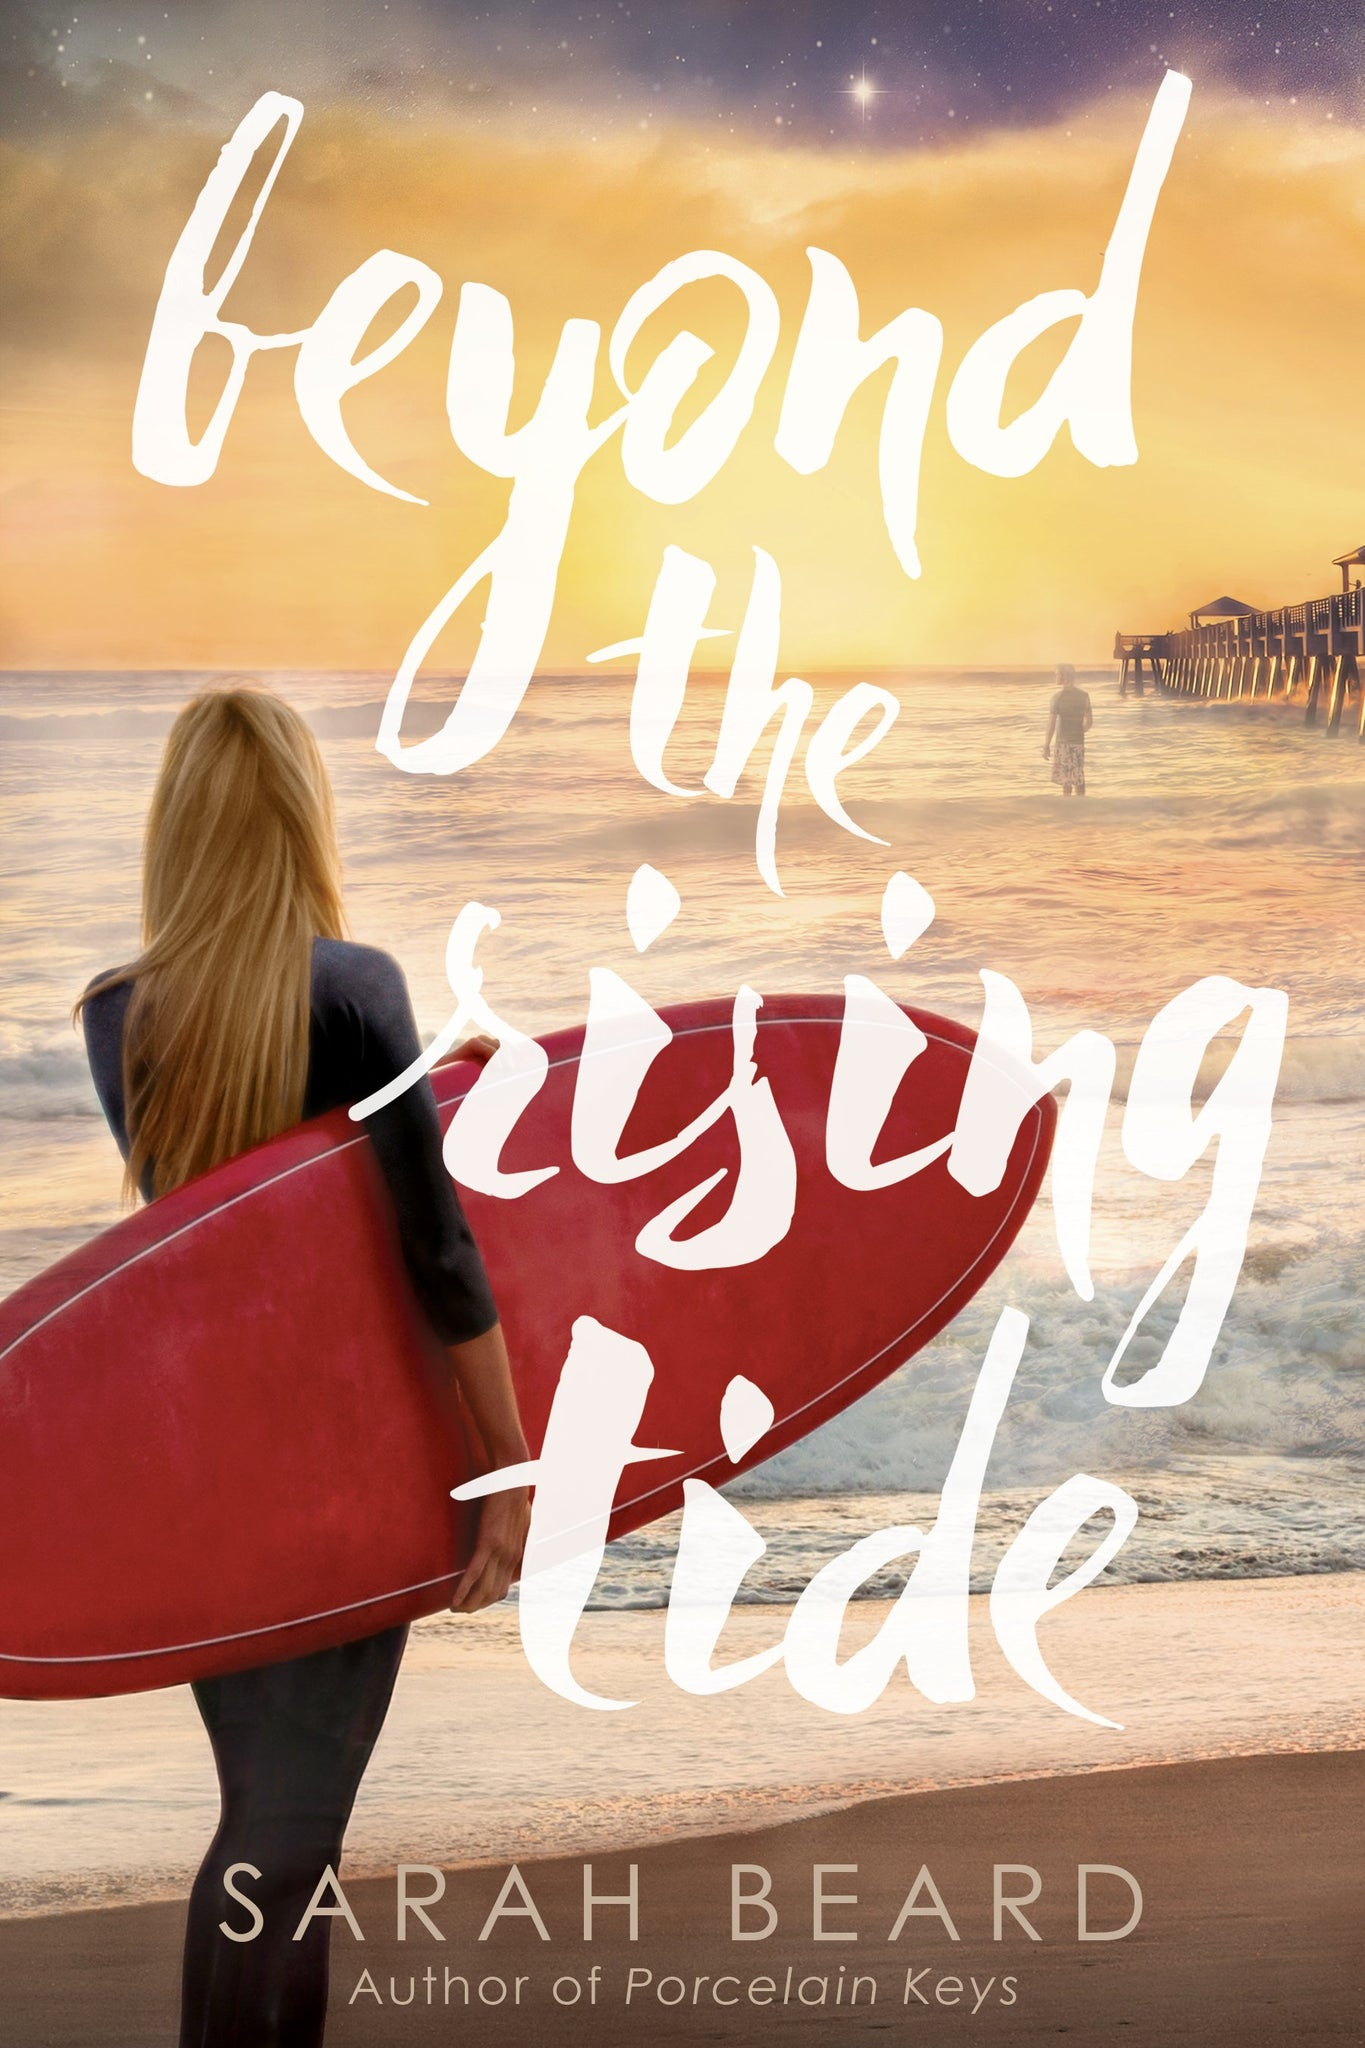 Beyond the Rising Tide - Paperback